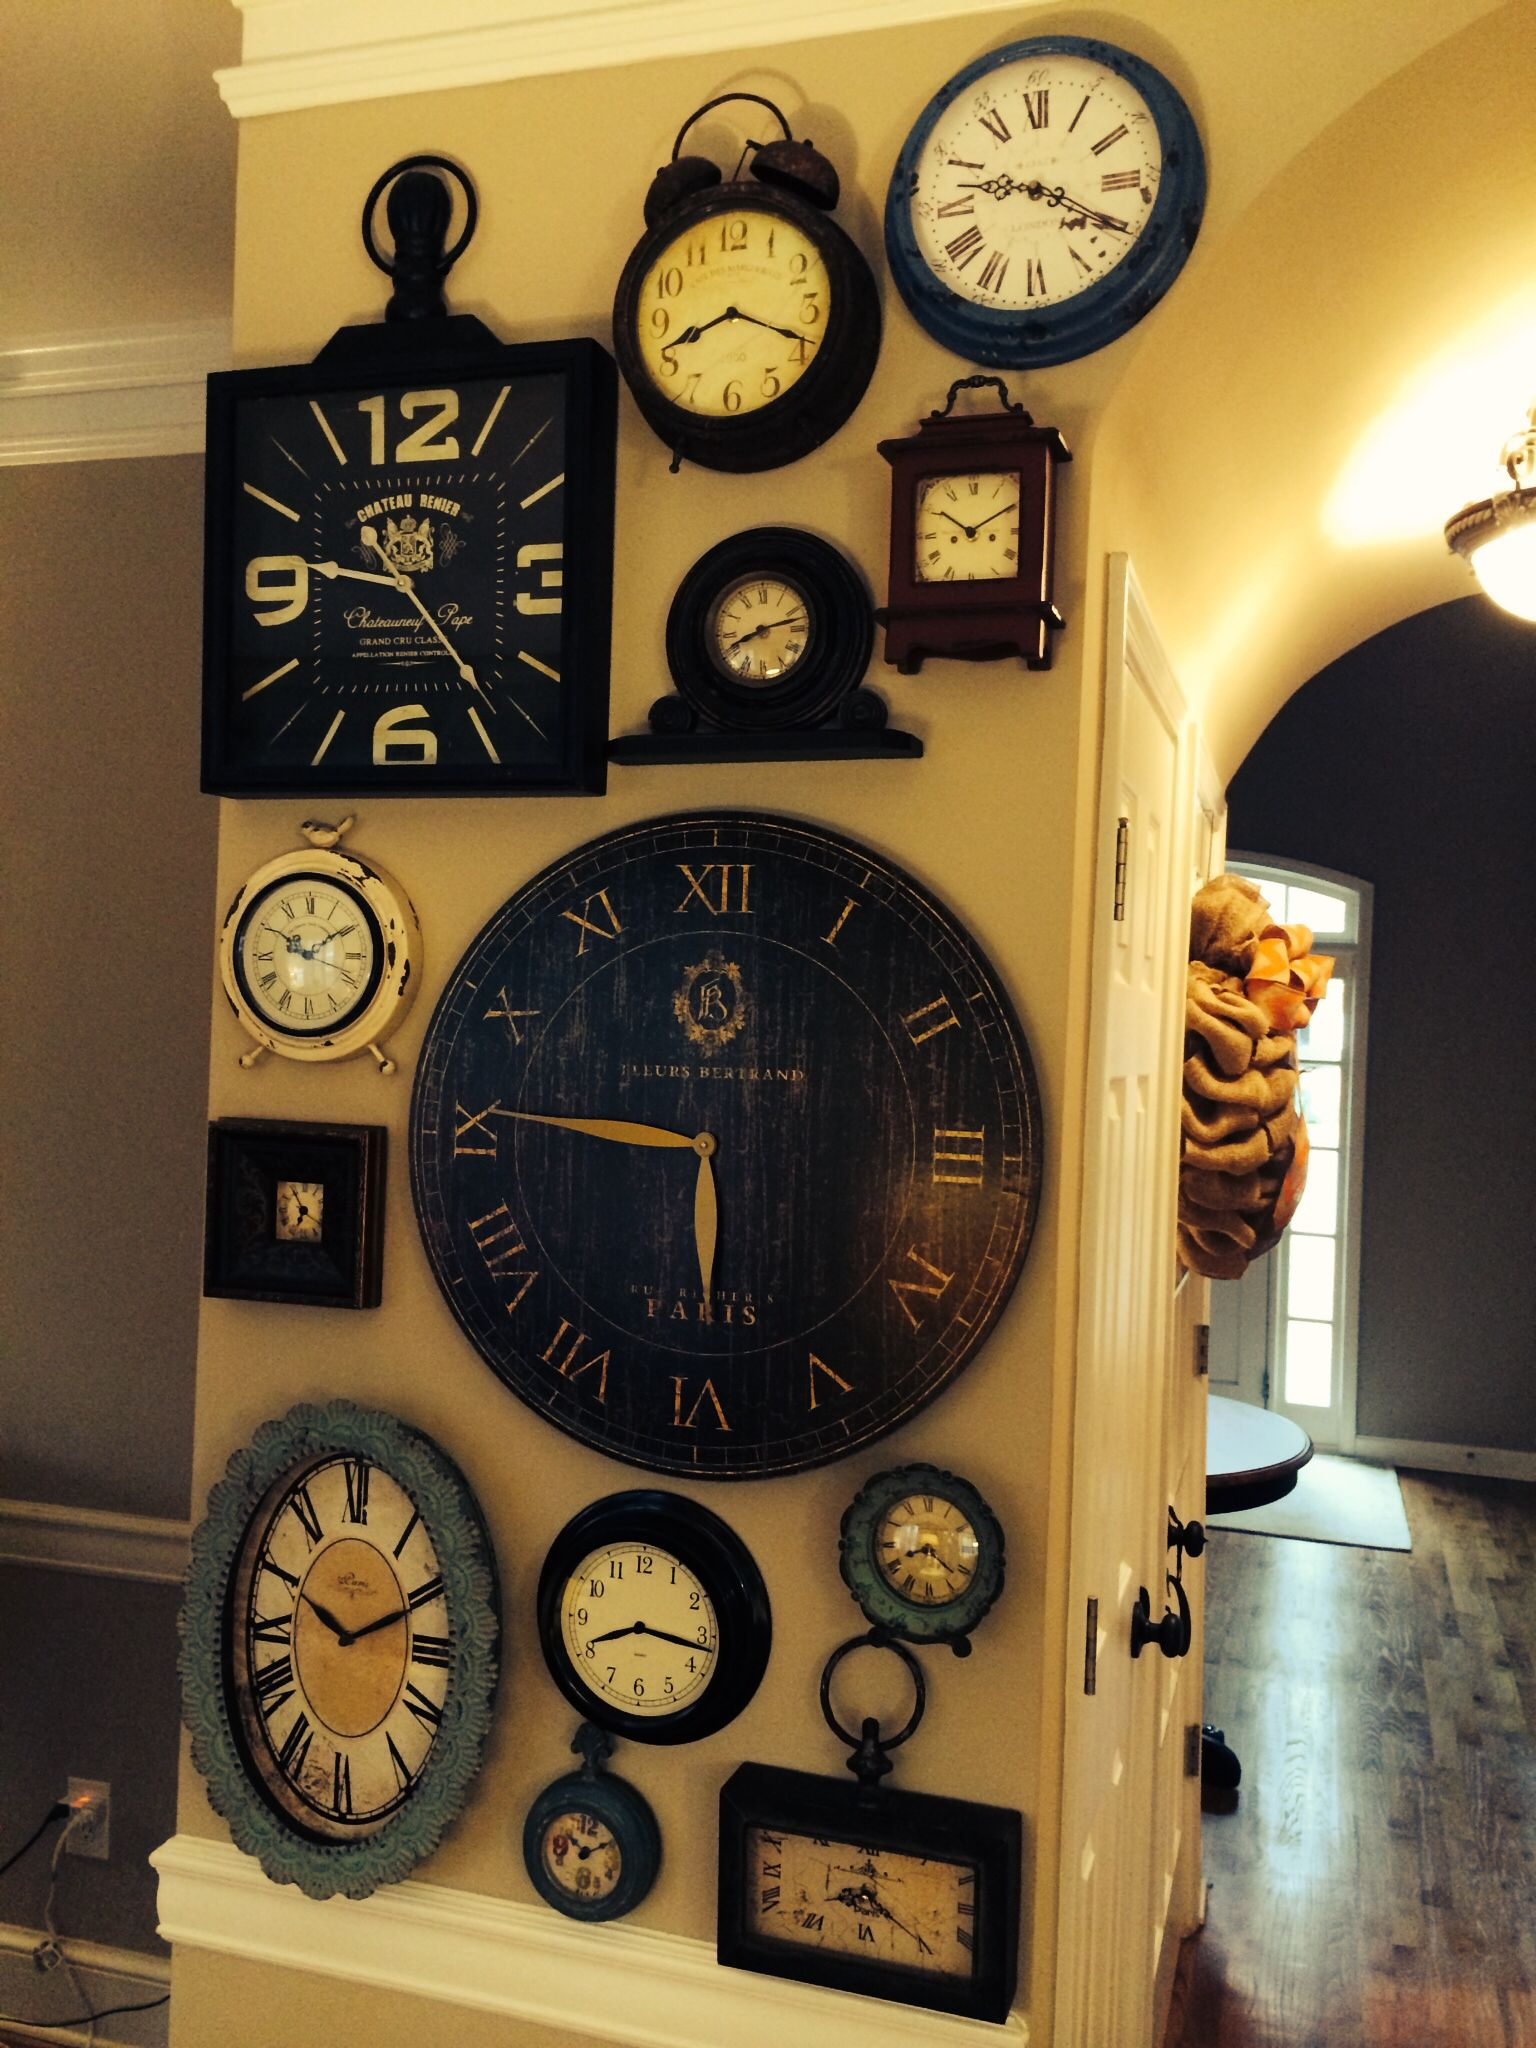 Impressive collection of large wall clocks decor ideas that you impressive collection of large wall clocks decor ideas that you will love more amipublicfo Choice Image